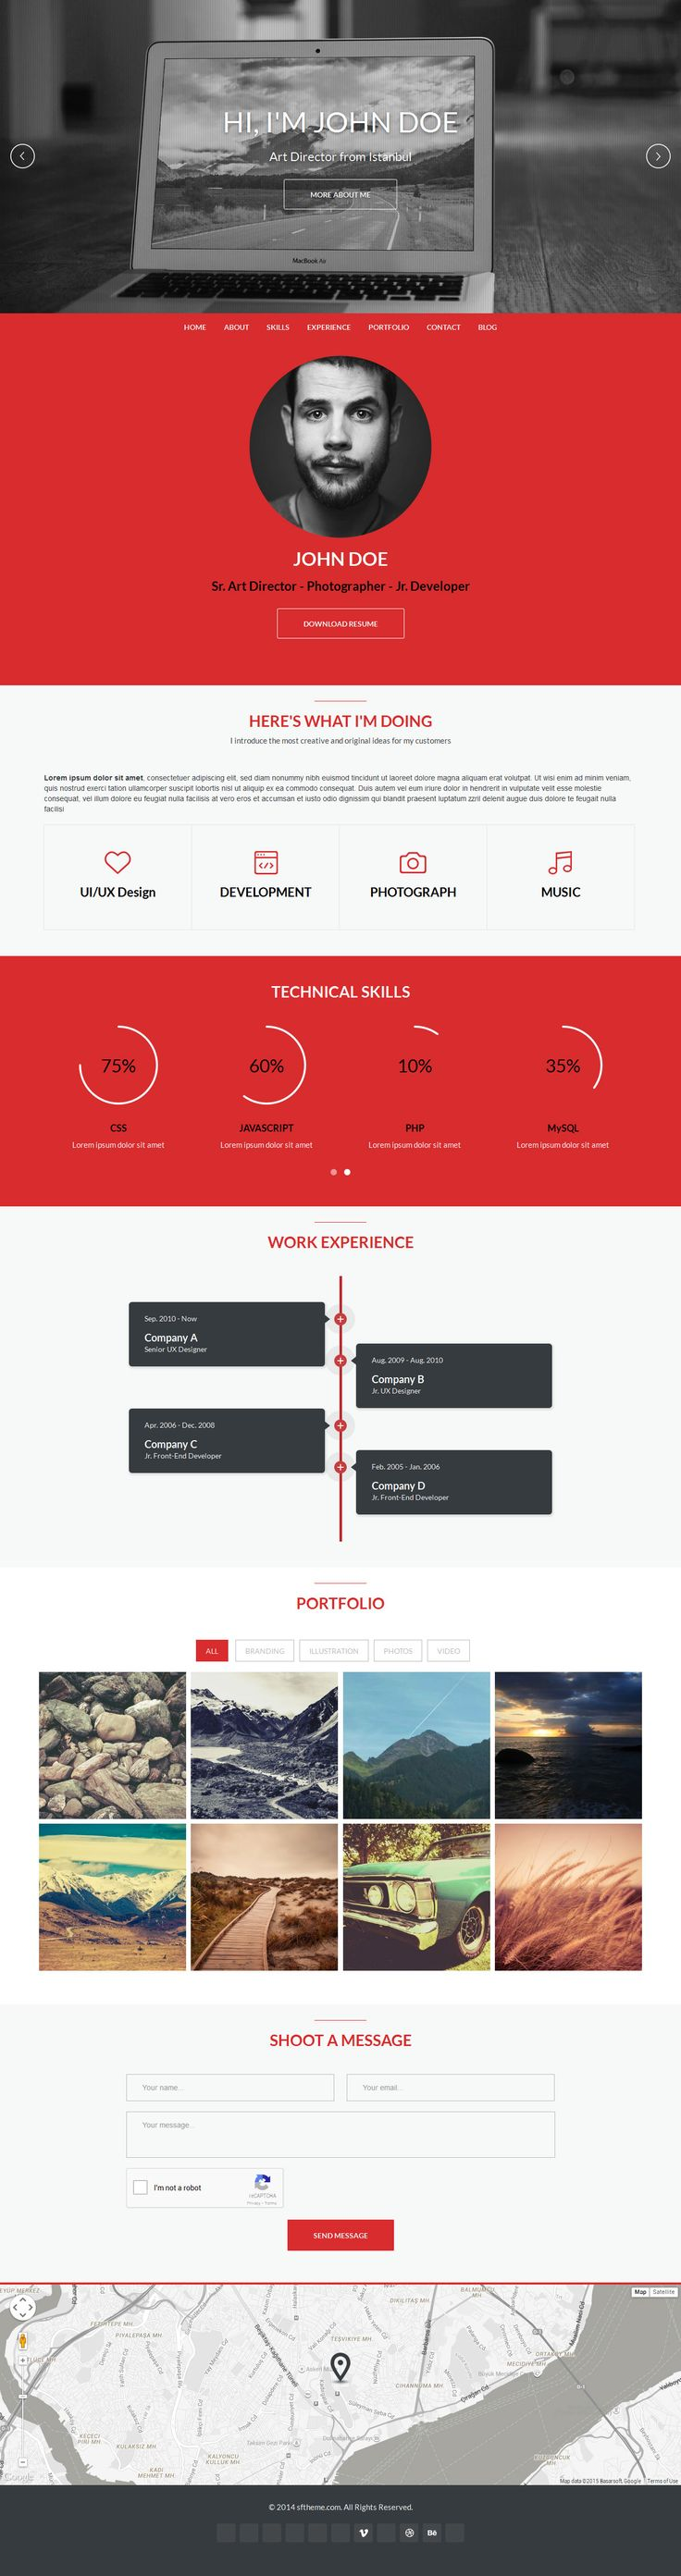 Like the timeline feature and layout. #red #gray #resume #portfolio